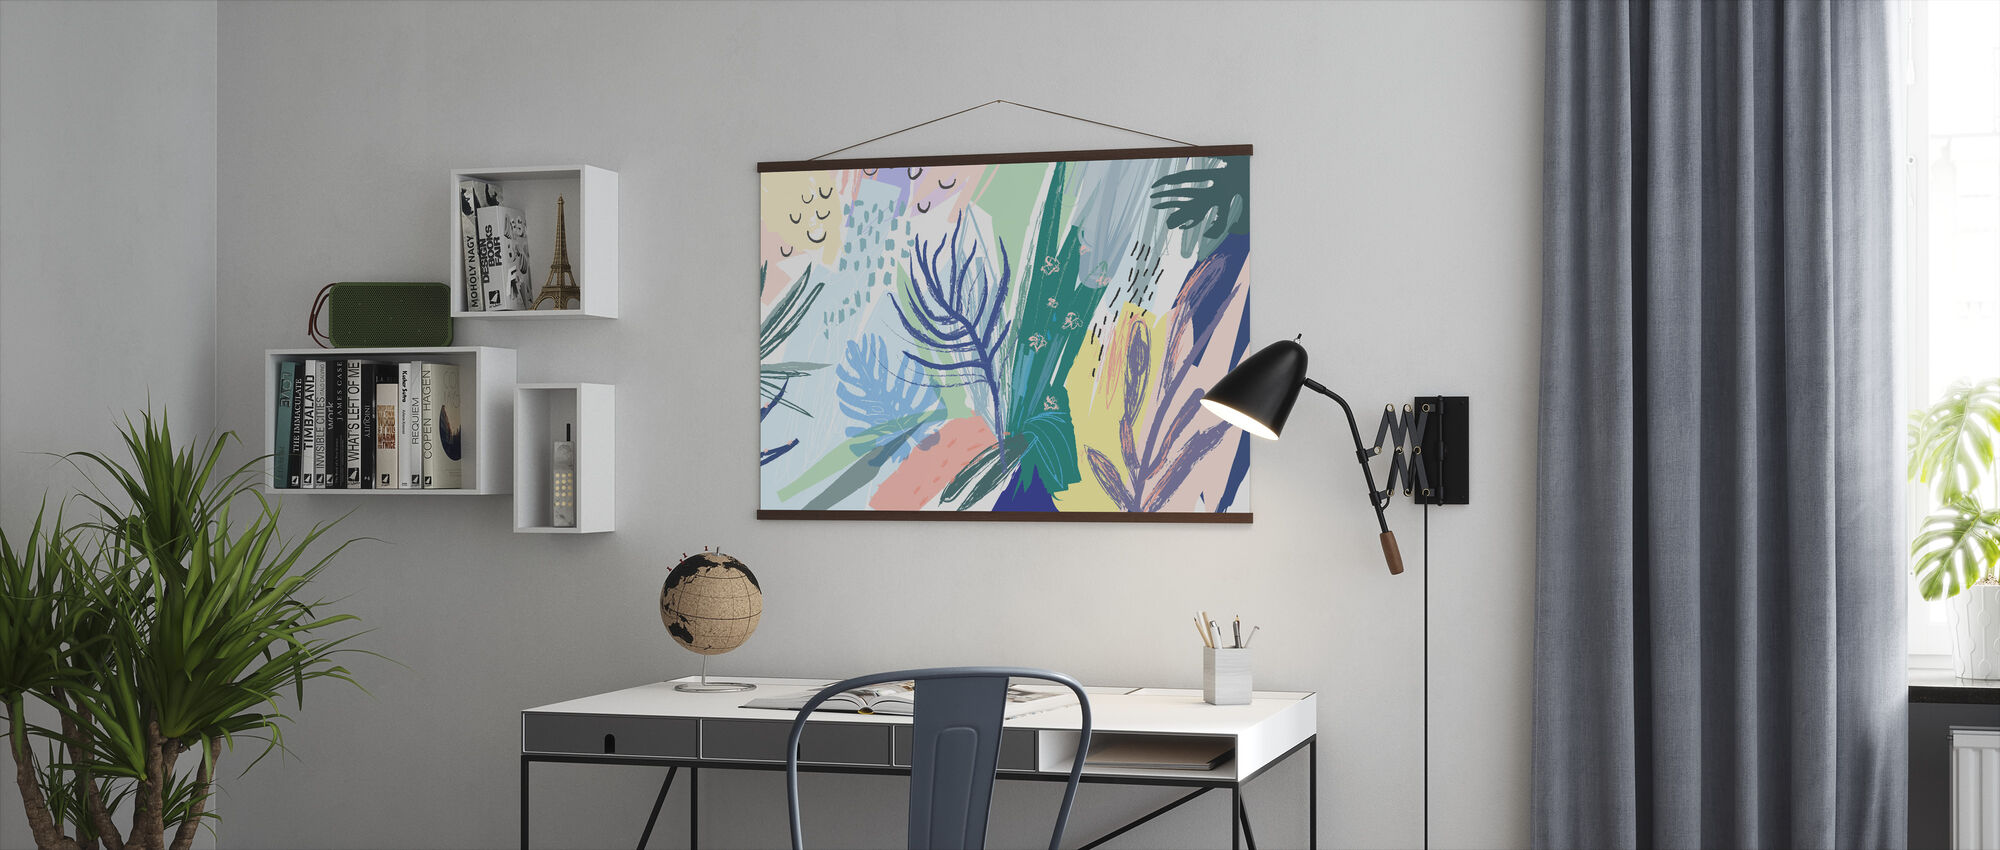 Floralial - Poster - Office